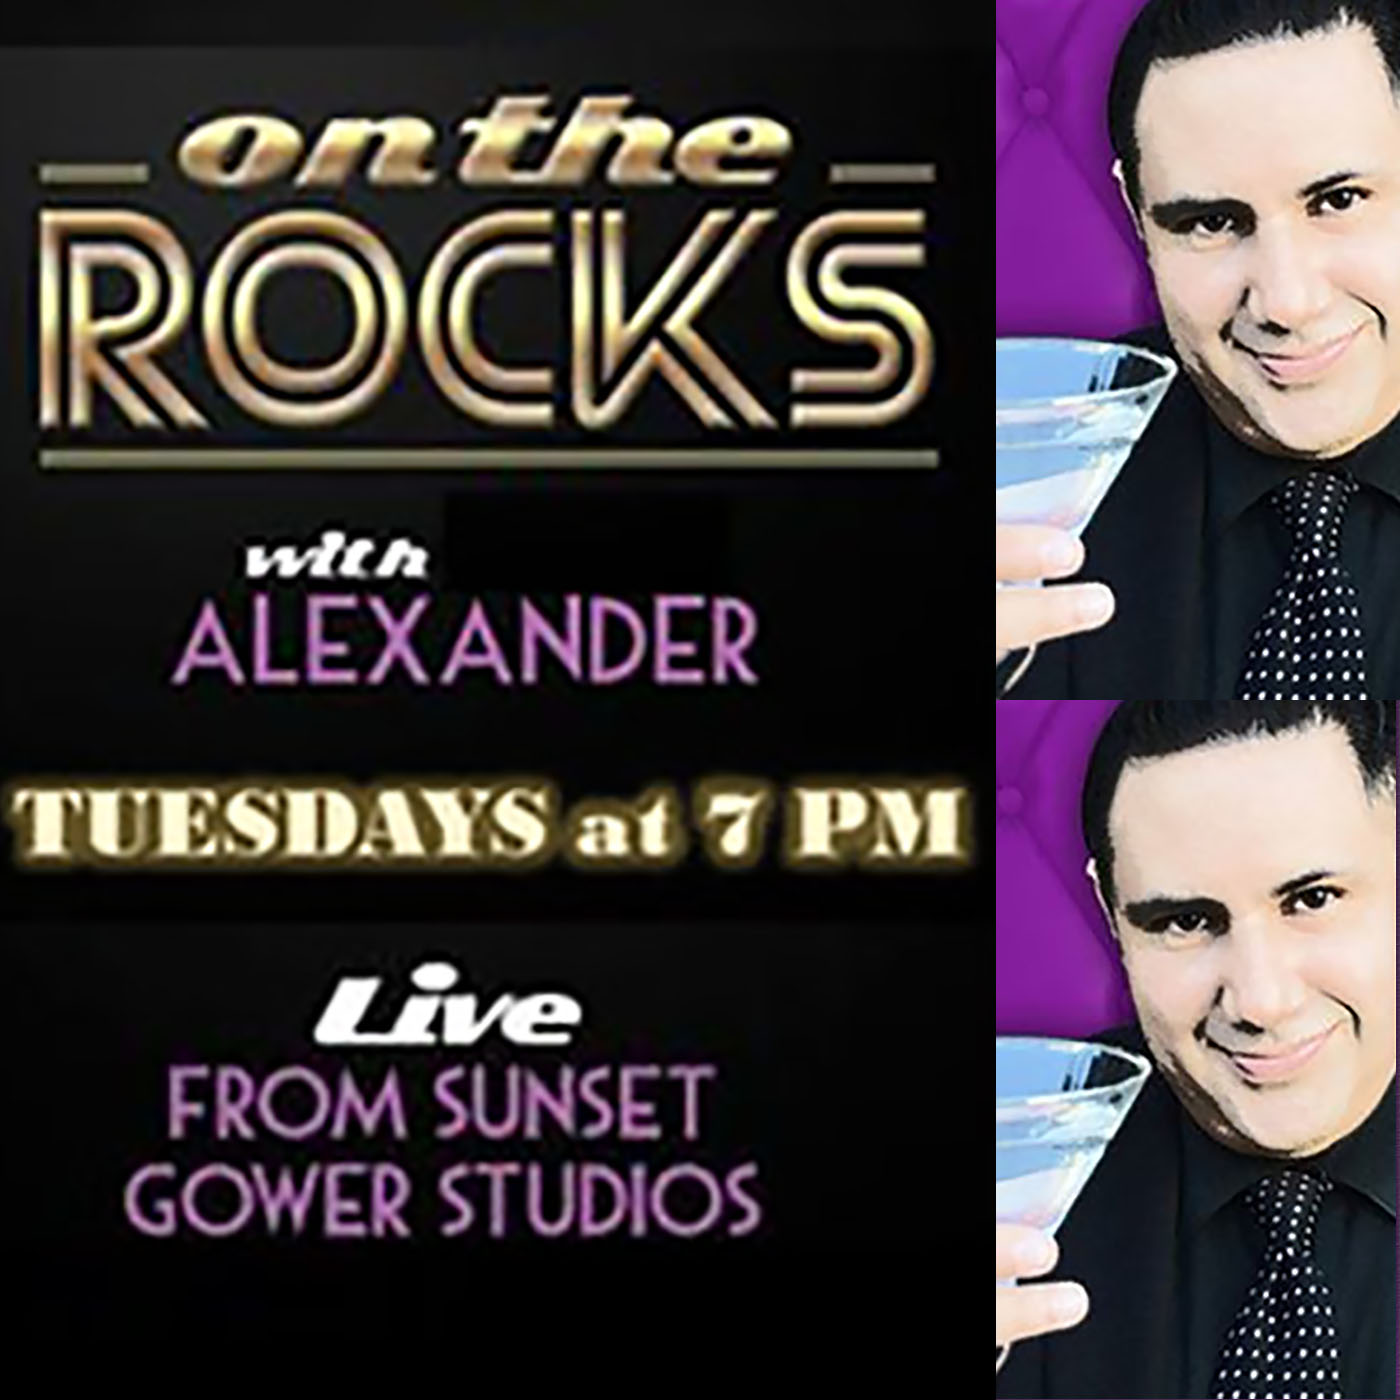 On The Rocks with Alexander